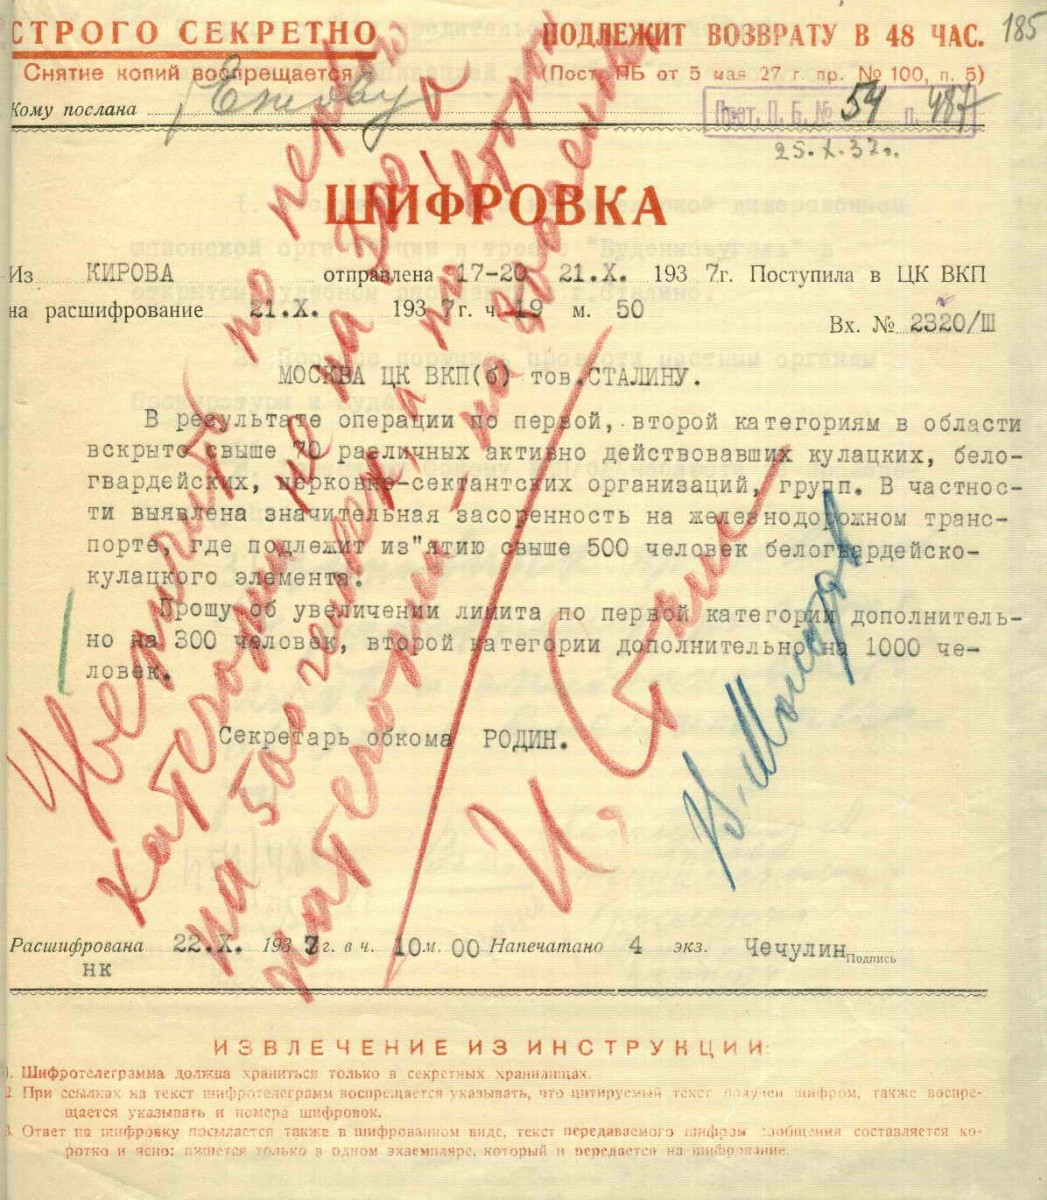 Stalin visa on repressions list